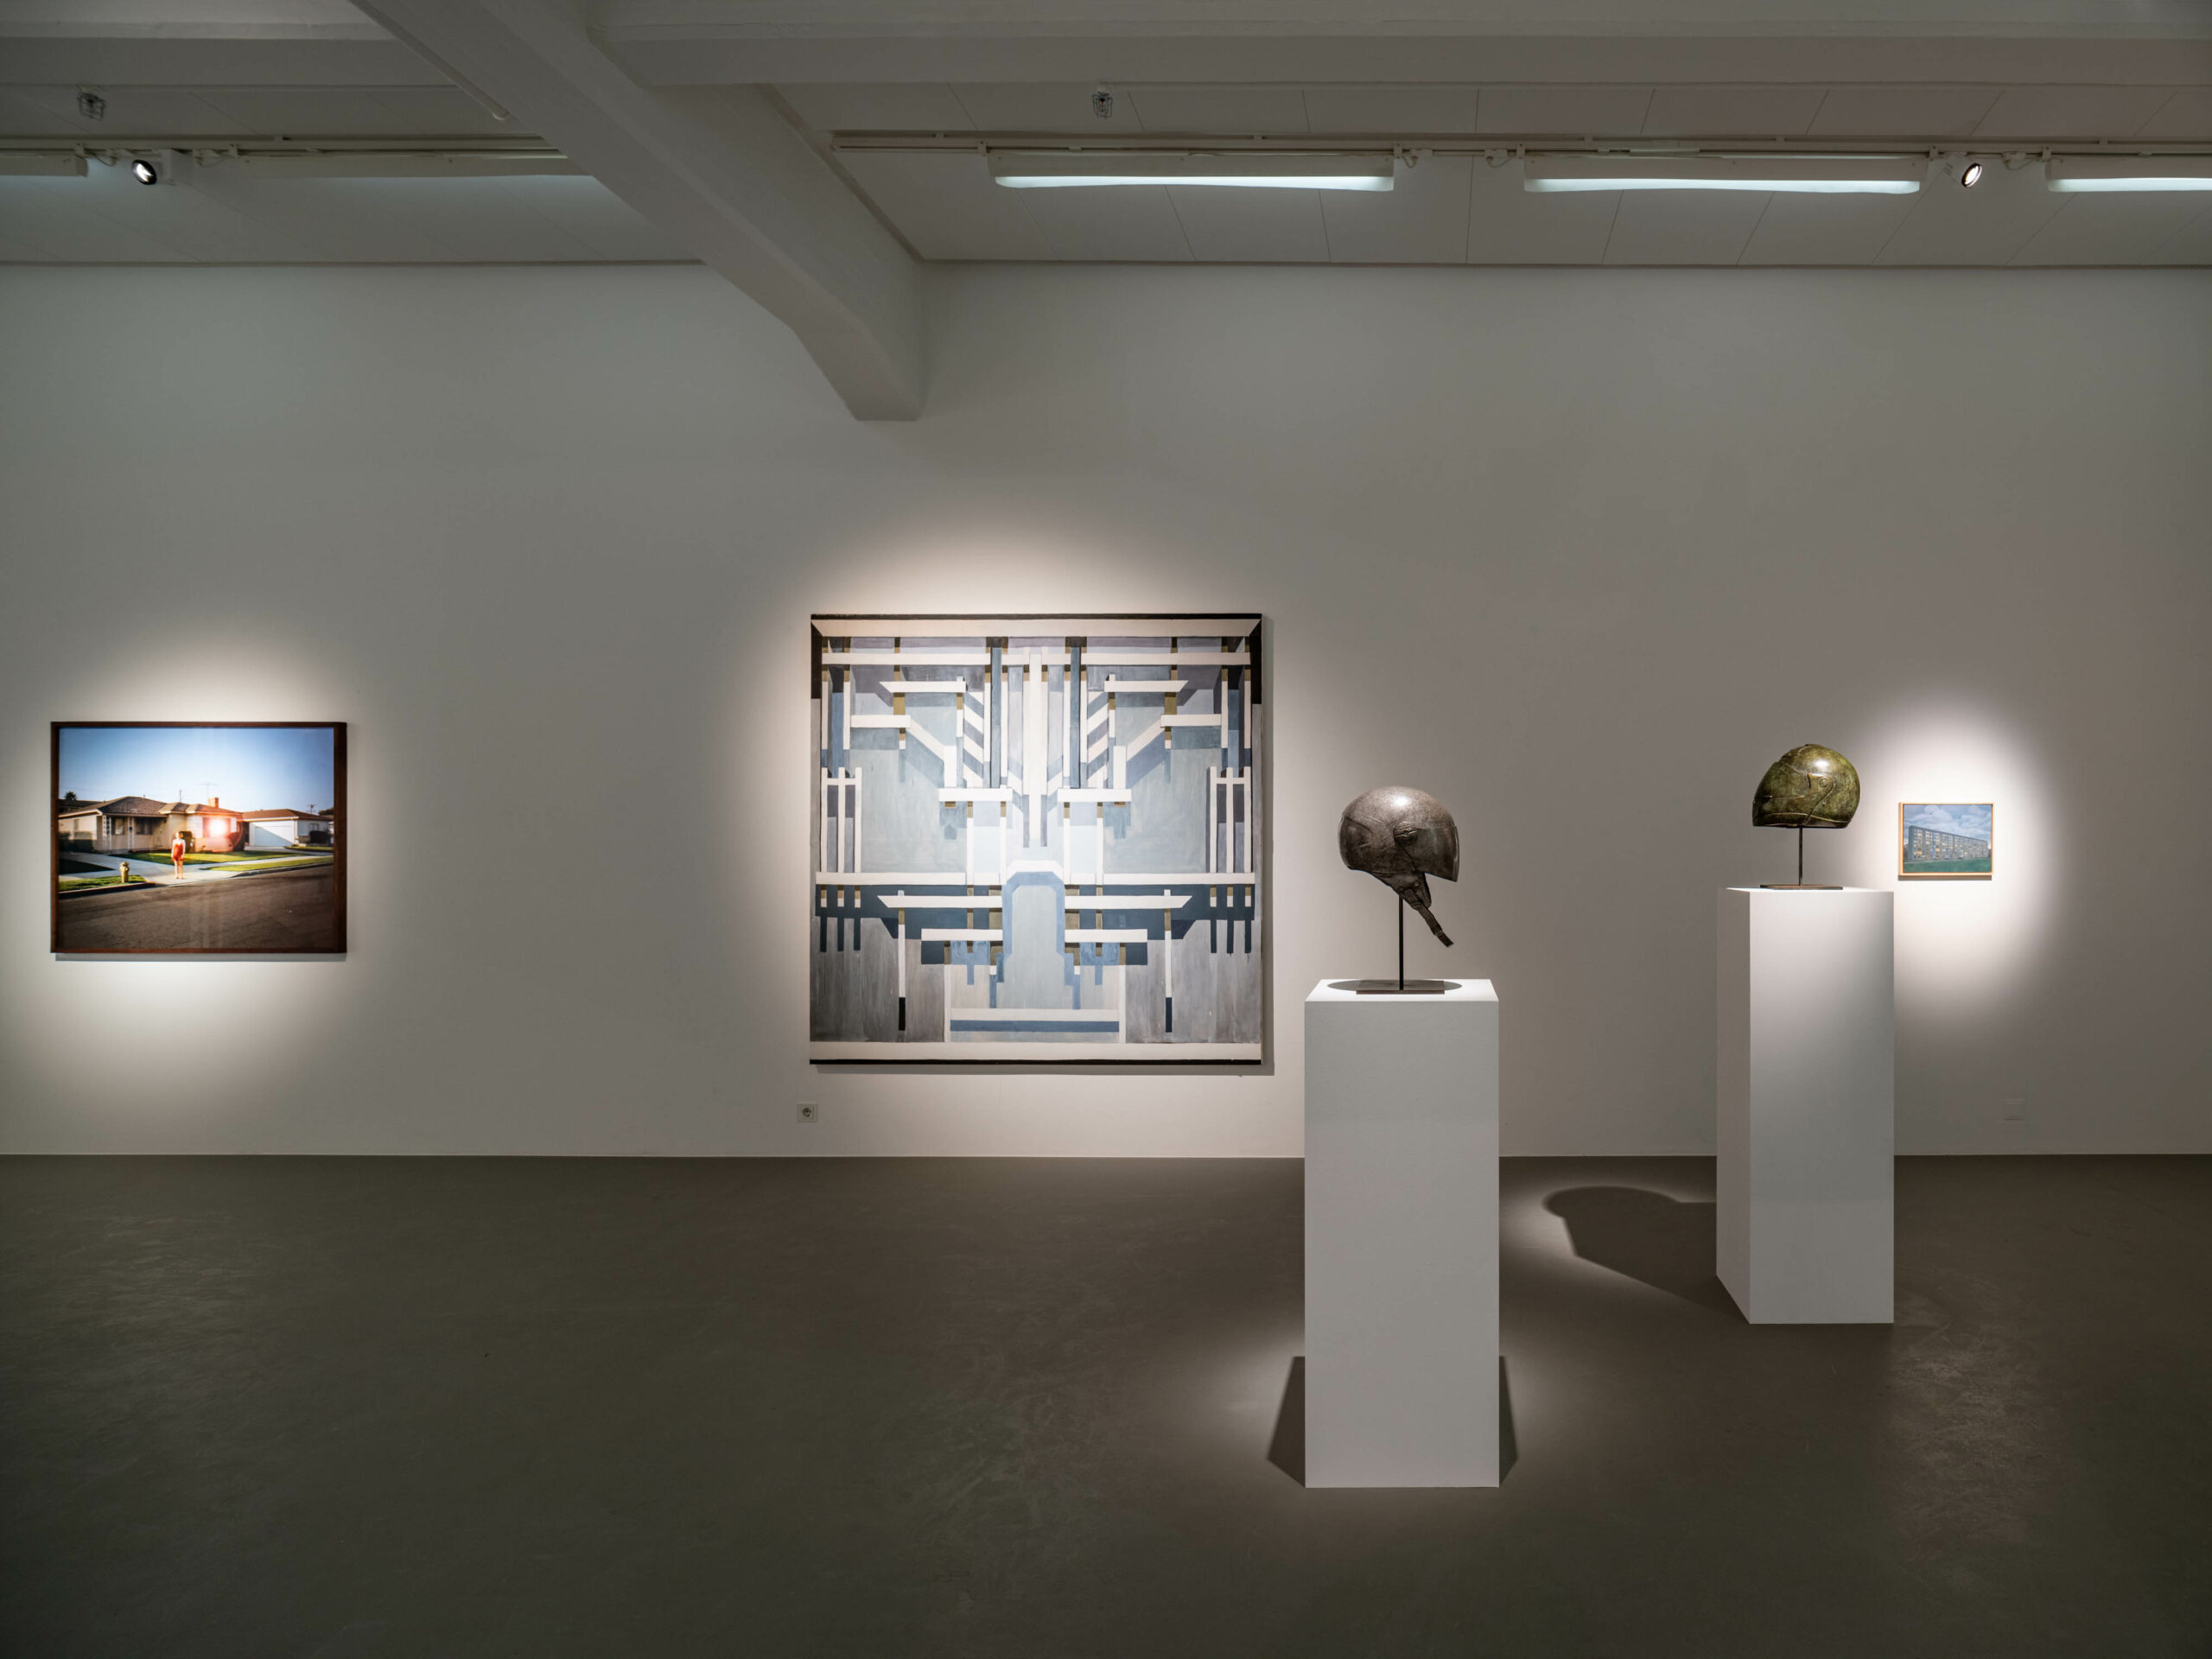 Installation view, Once in a Blue Moon, a group show with gallery artists, 2021, Cecilia Hillström Gallery. Photo: Jean-Baptiste Béranger